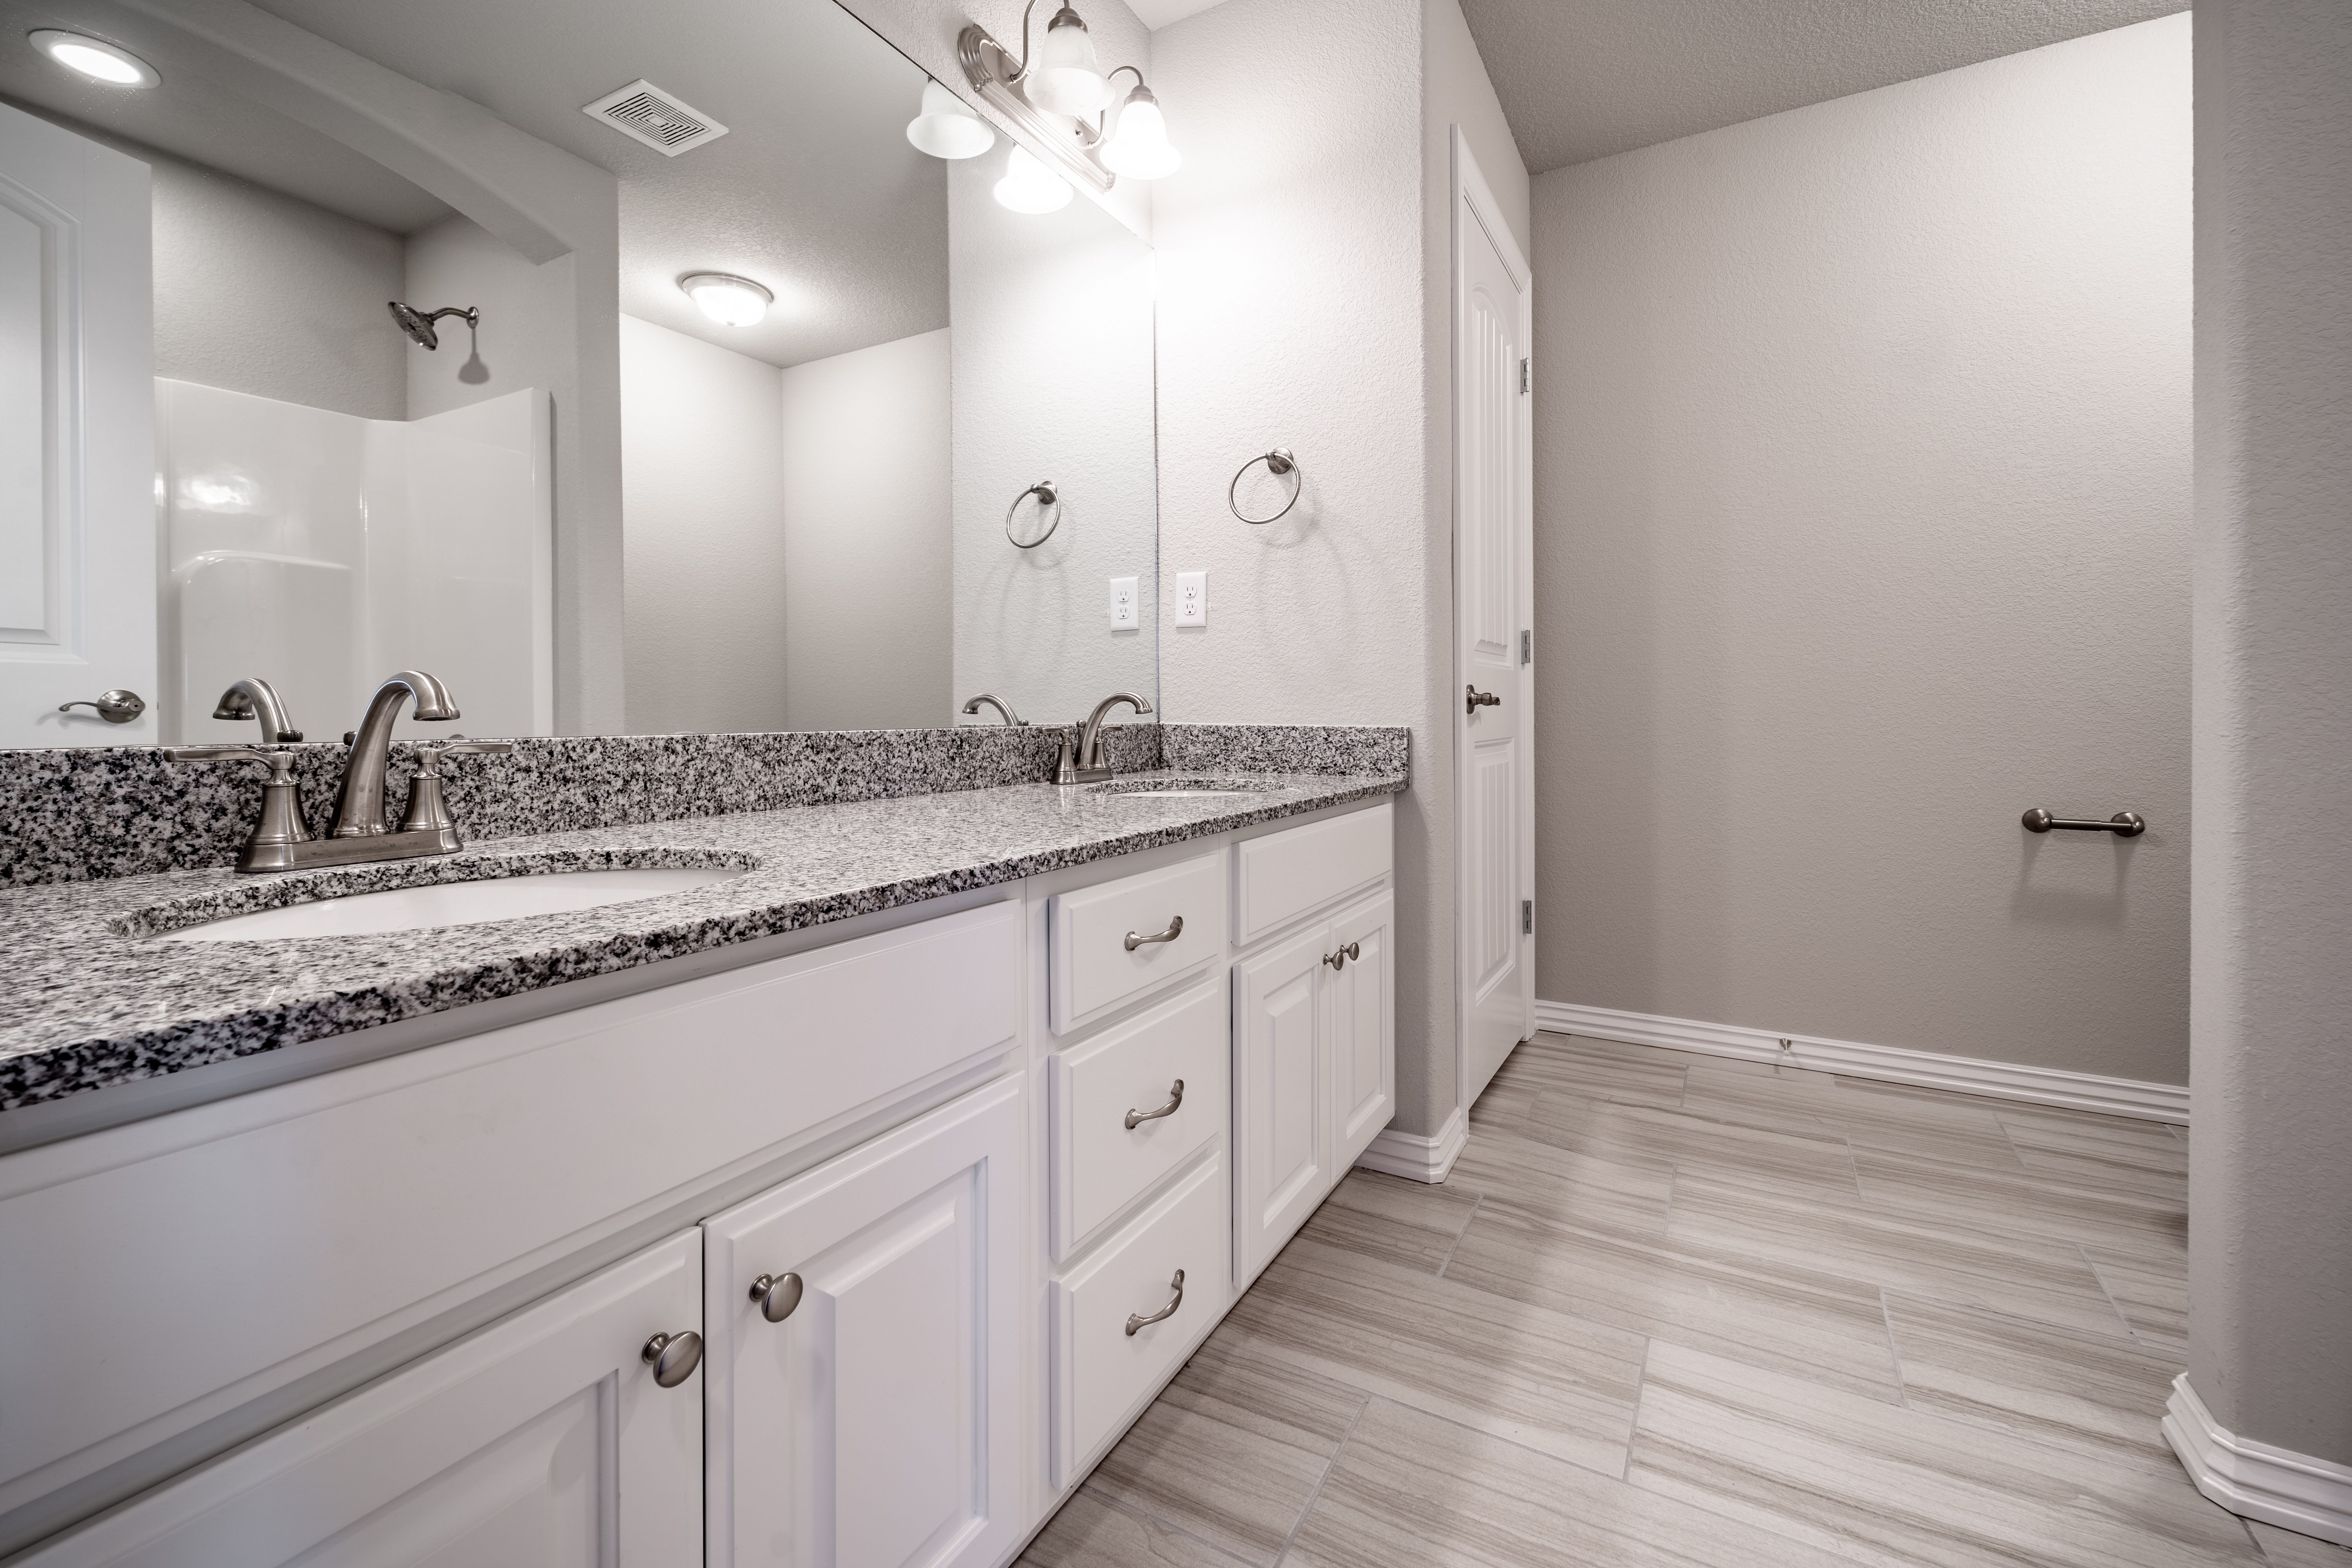 Bathroom featured in the Hamilton 1787 By Riverwood Homes - Arkansas in Fayetteville, AR